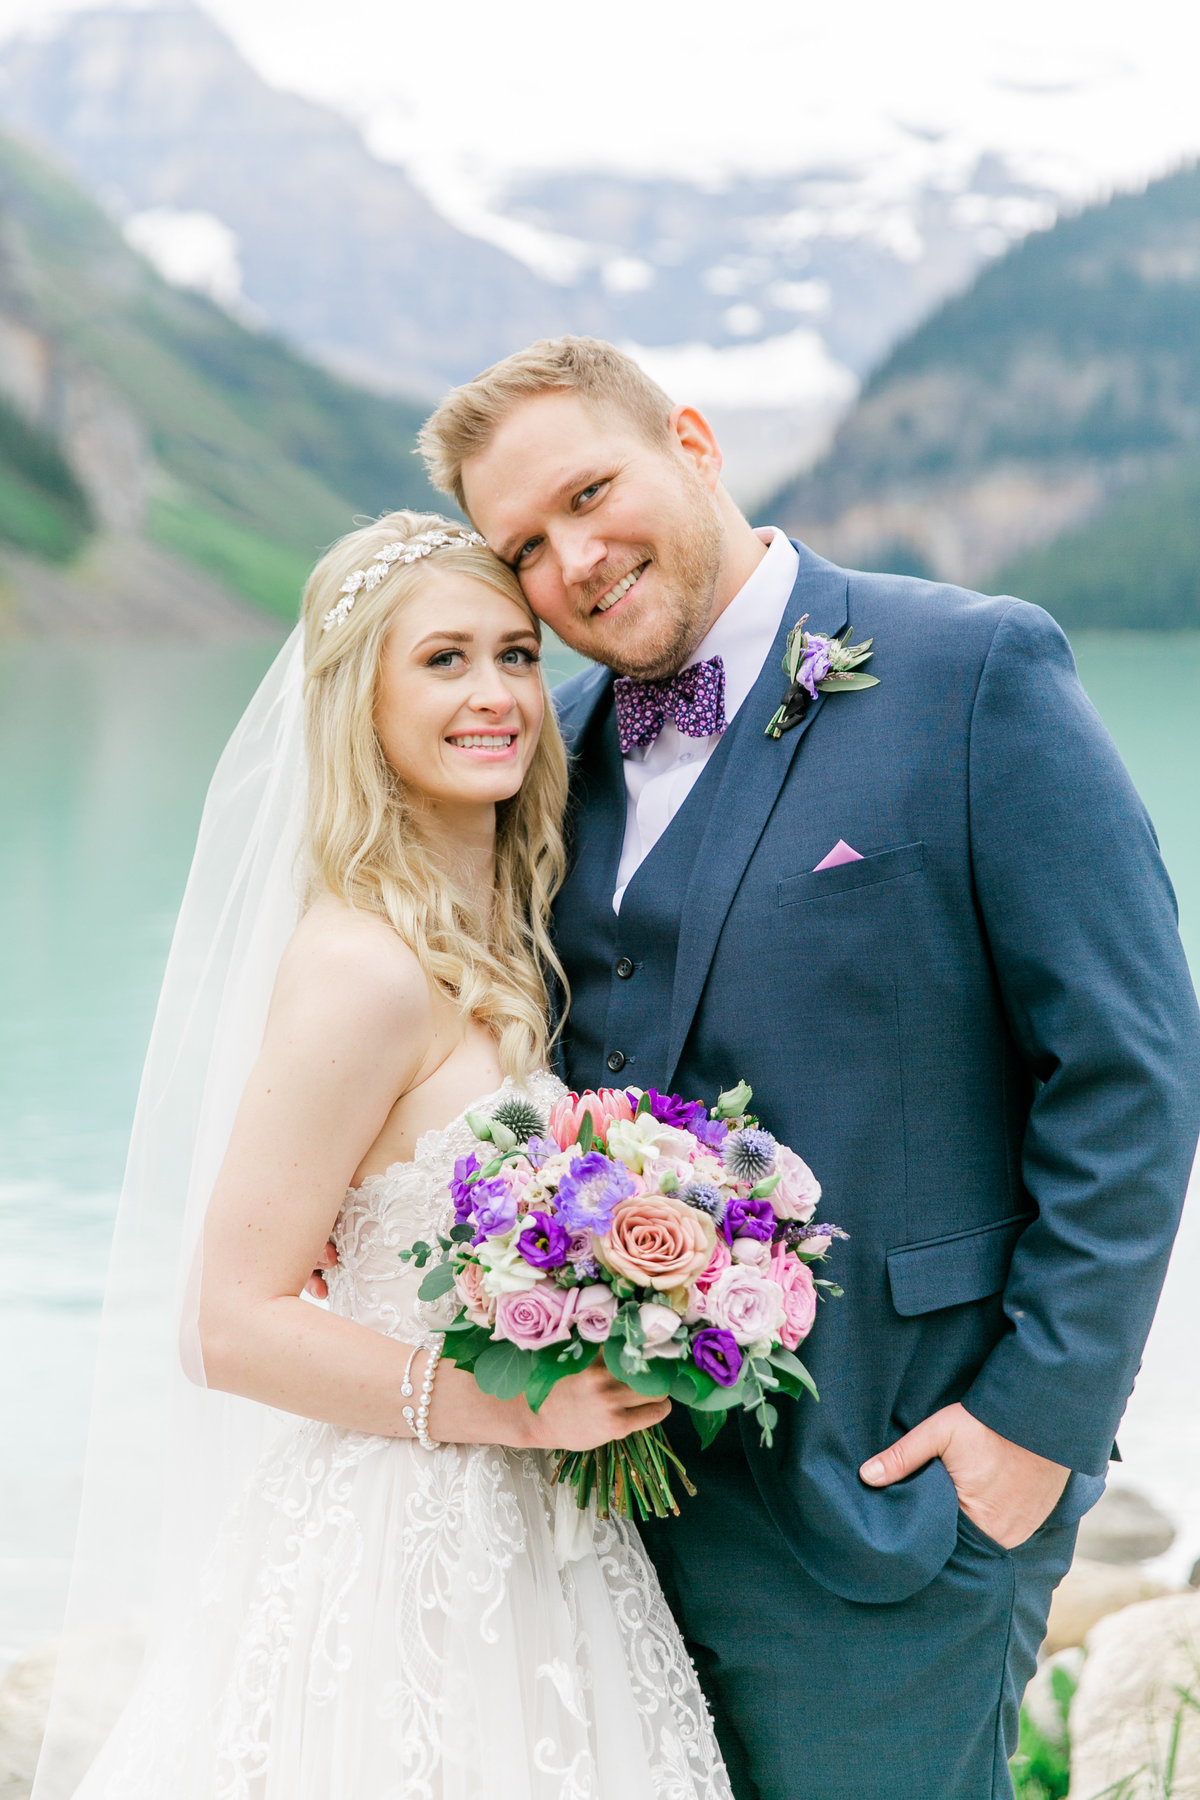 Karlie Colleen Photography - Fairmont Chateau Lake Louise Wedding - Banff Canada - Sara & Drew Forsberg-996